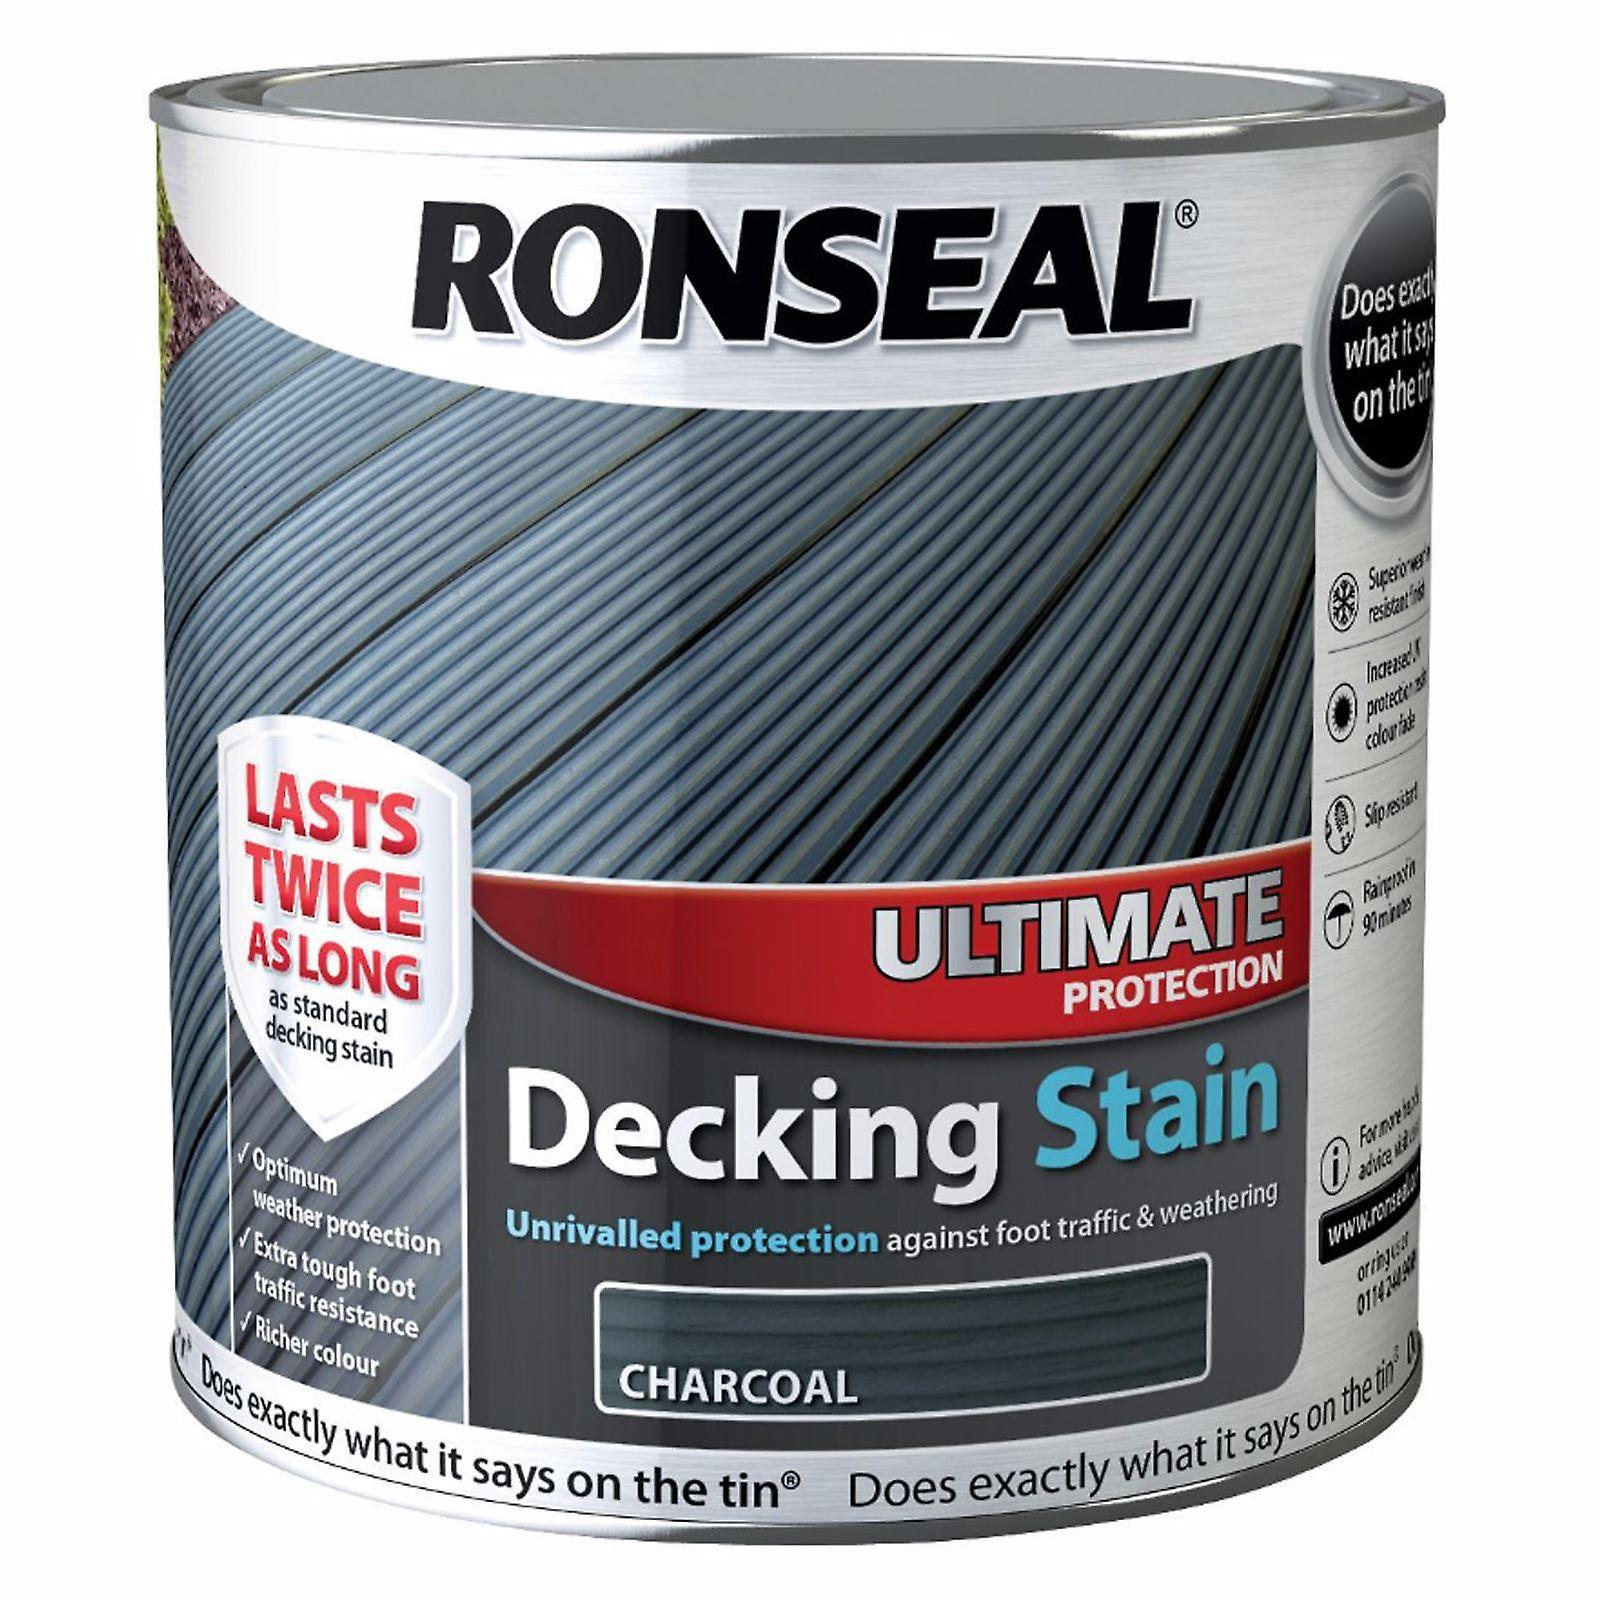 Ronseal 2.5L Ultimate Protection Decking Stain - Charcoal